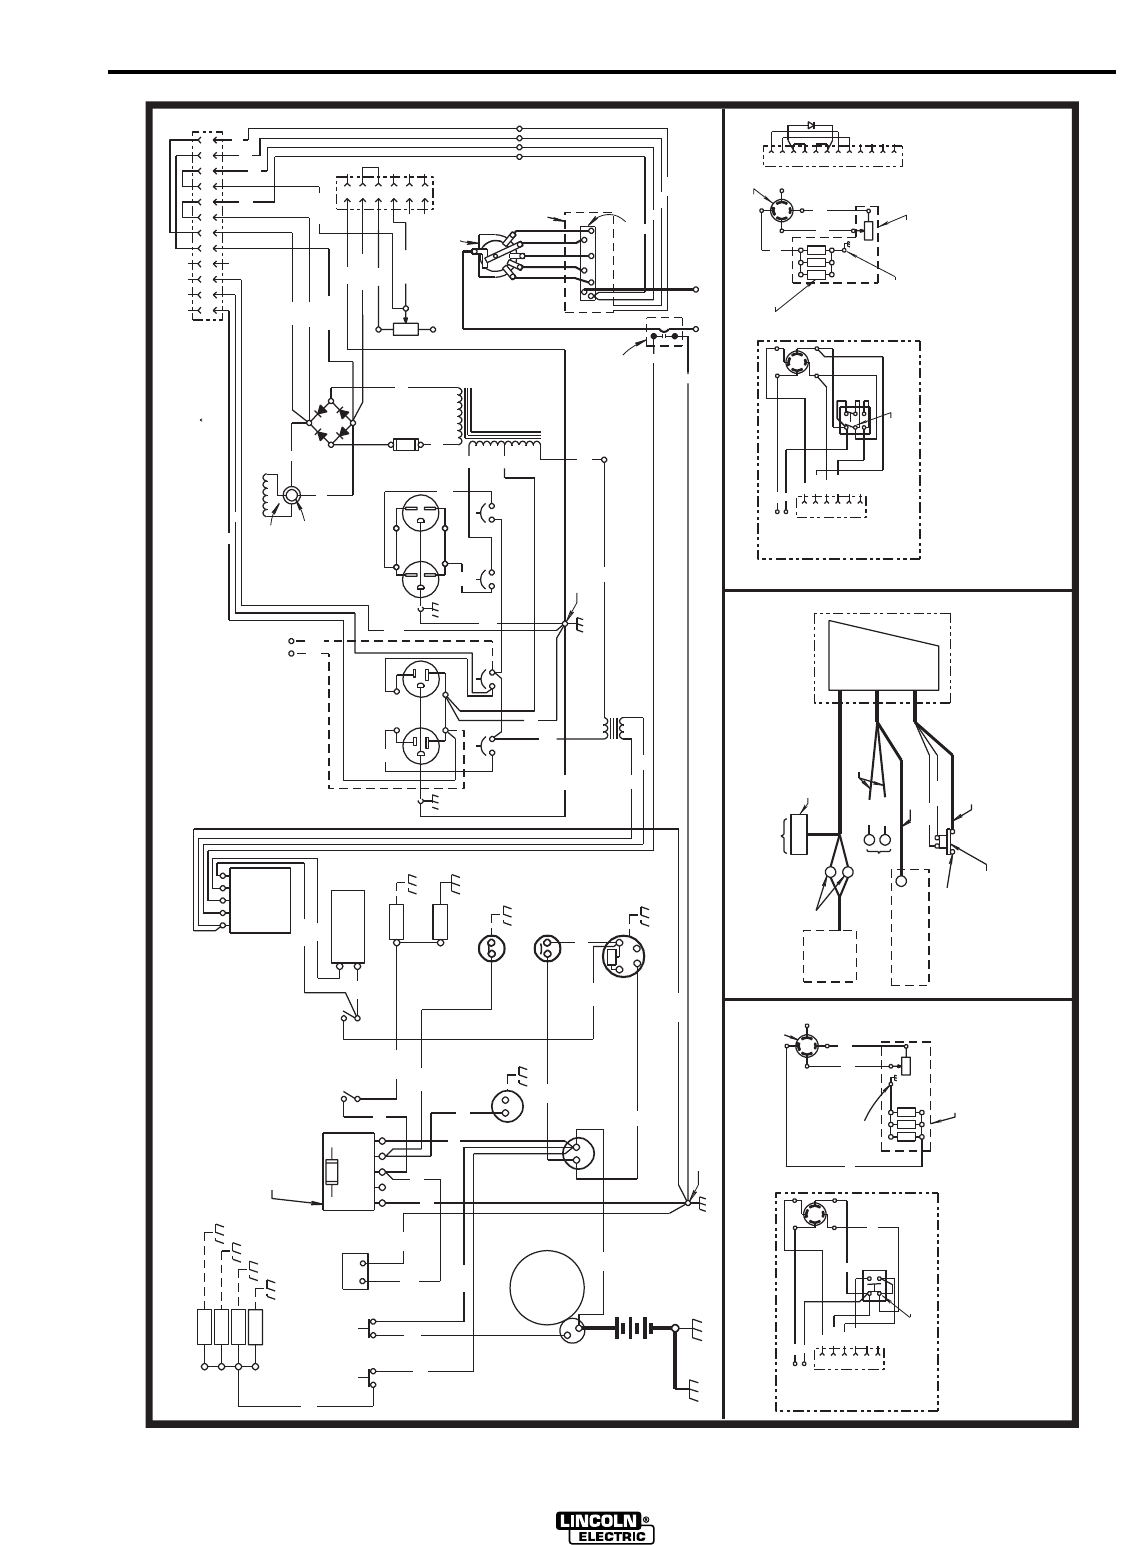 Lincoln Ac 225 220v Tombstone Michaelieclark S Wiring Diagram Attractive Festooning Electrical System Electric